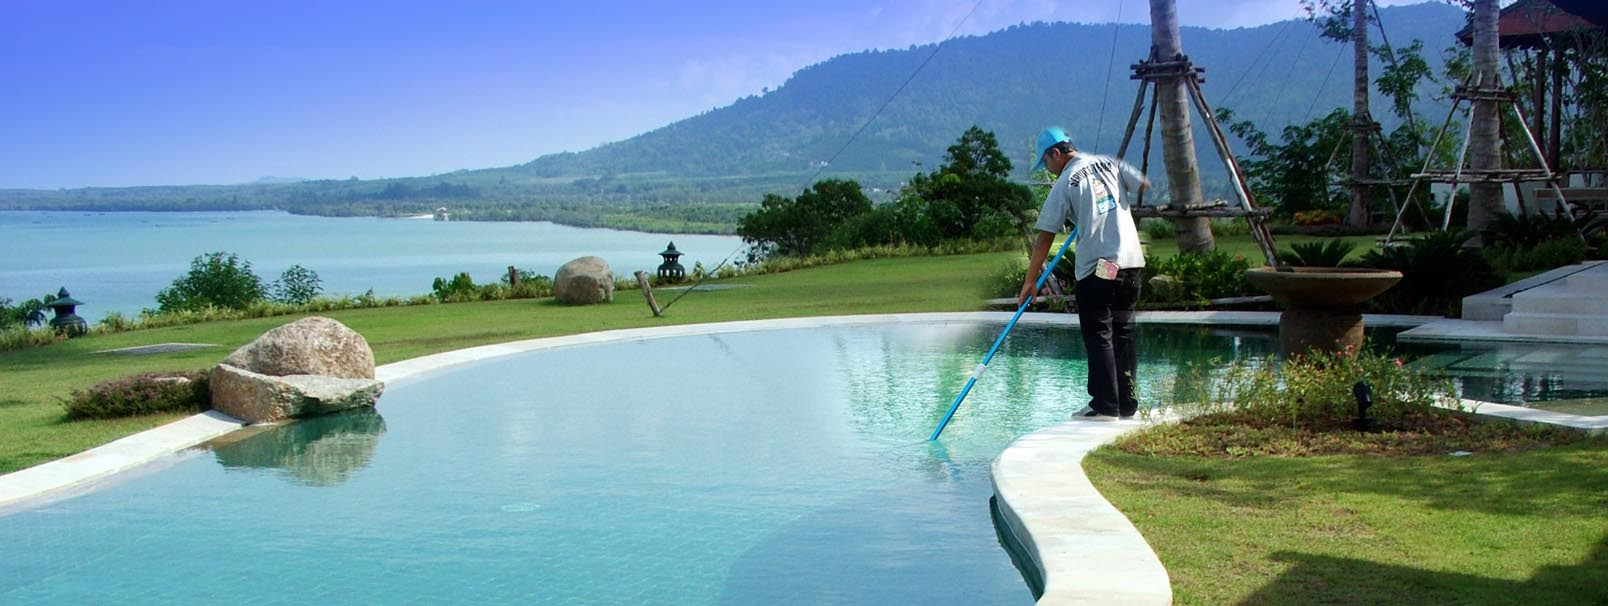 Cleaning Swimming Pools : Inground pool cleaners austin maintenance clean